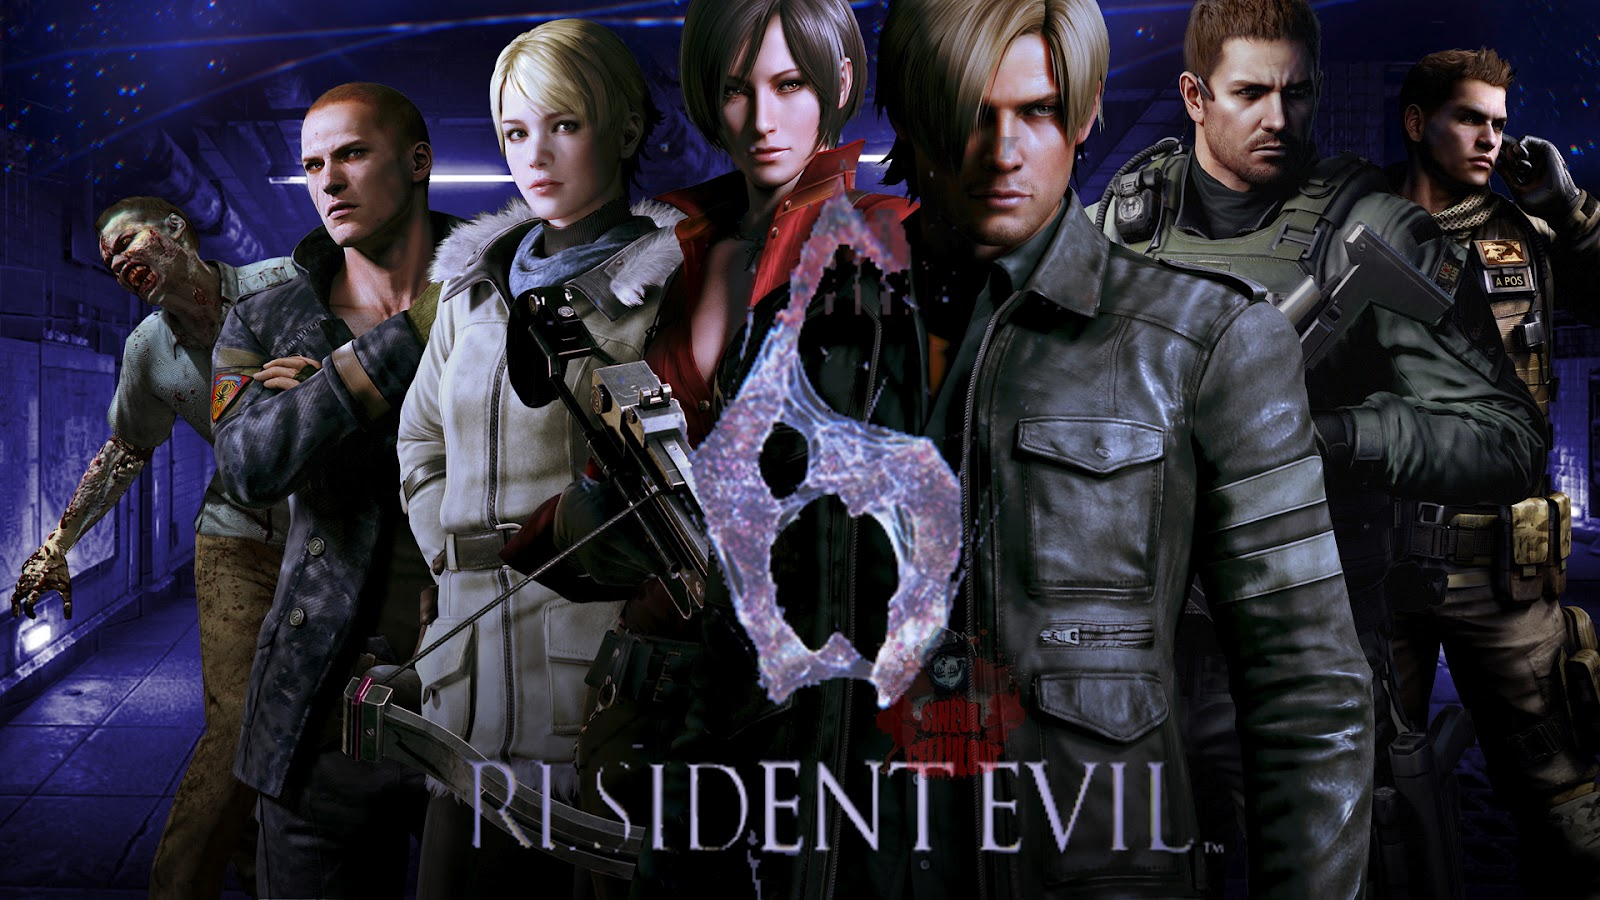 Resident Evil 6 The Series Like Its Characters Should Remain Dead